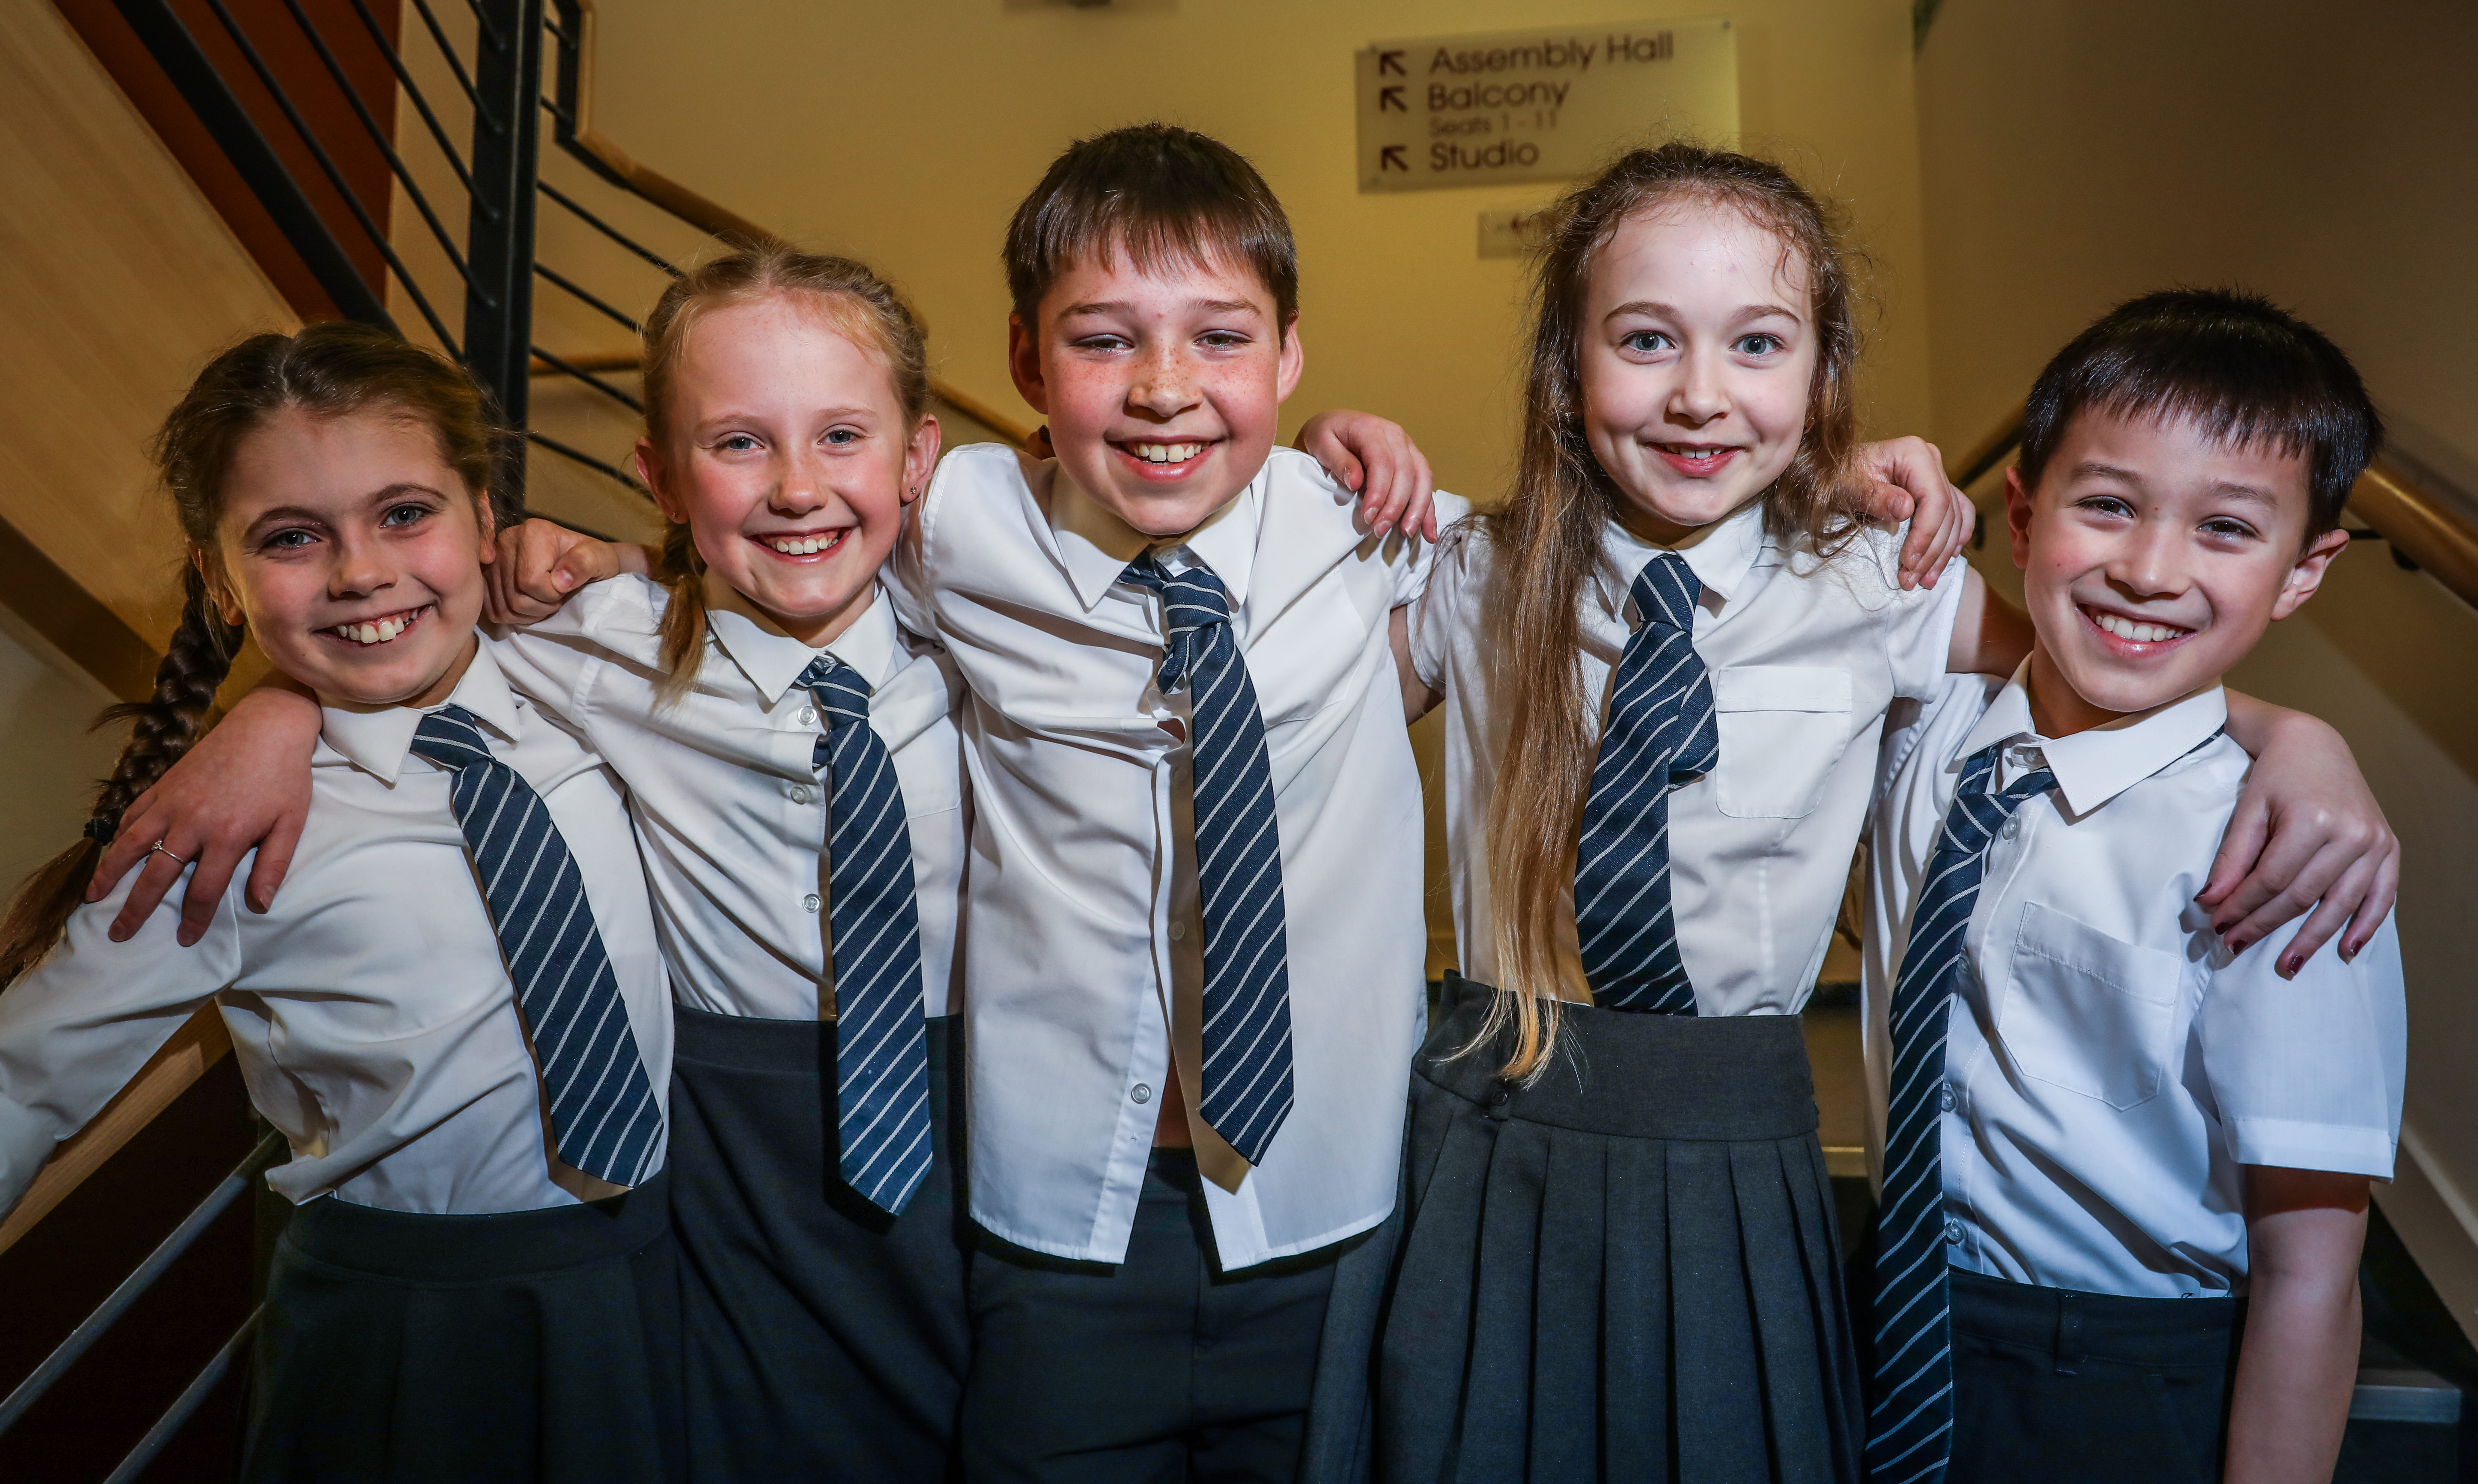 The pupils from Inverbrothock Primary School choir: L to r, Alanna Miller, Lara Jane Beattie, Max Cooper, Bailey Parcell and Elliot Lo.